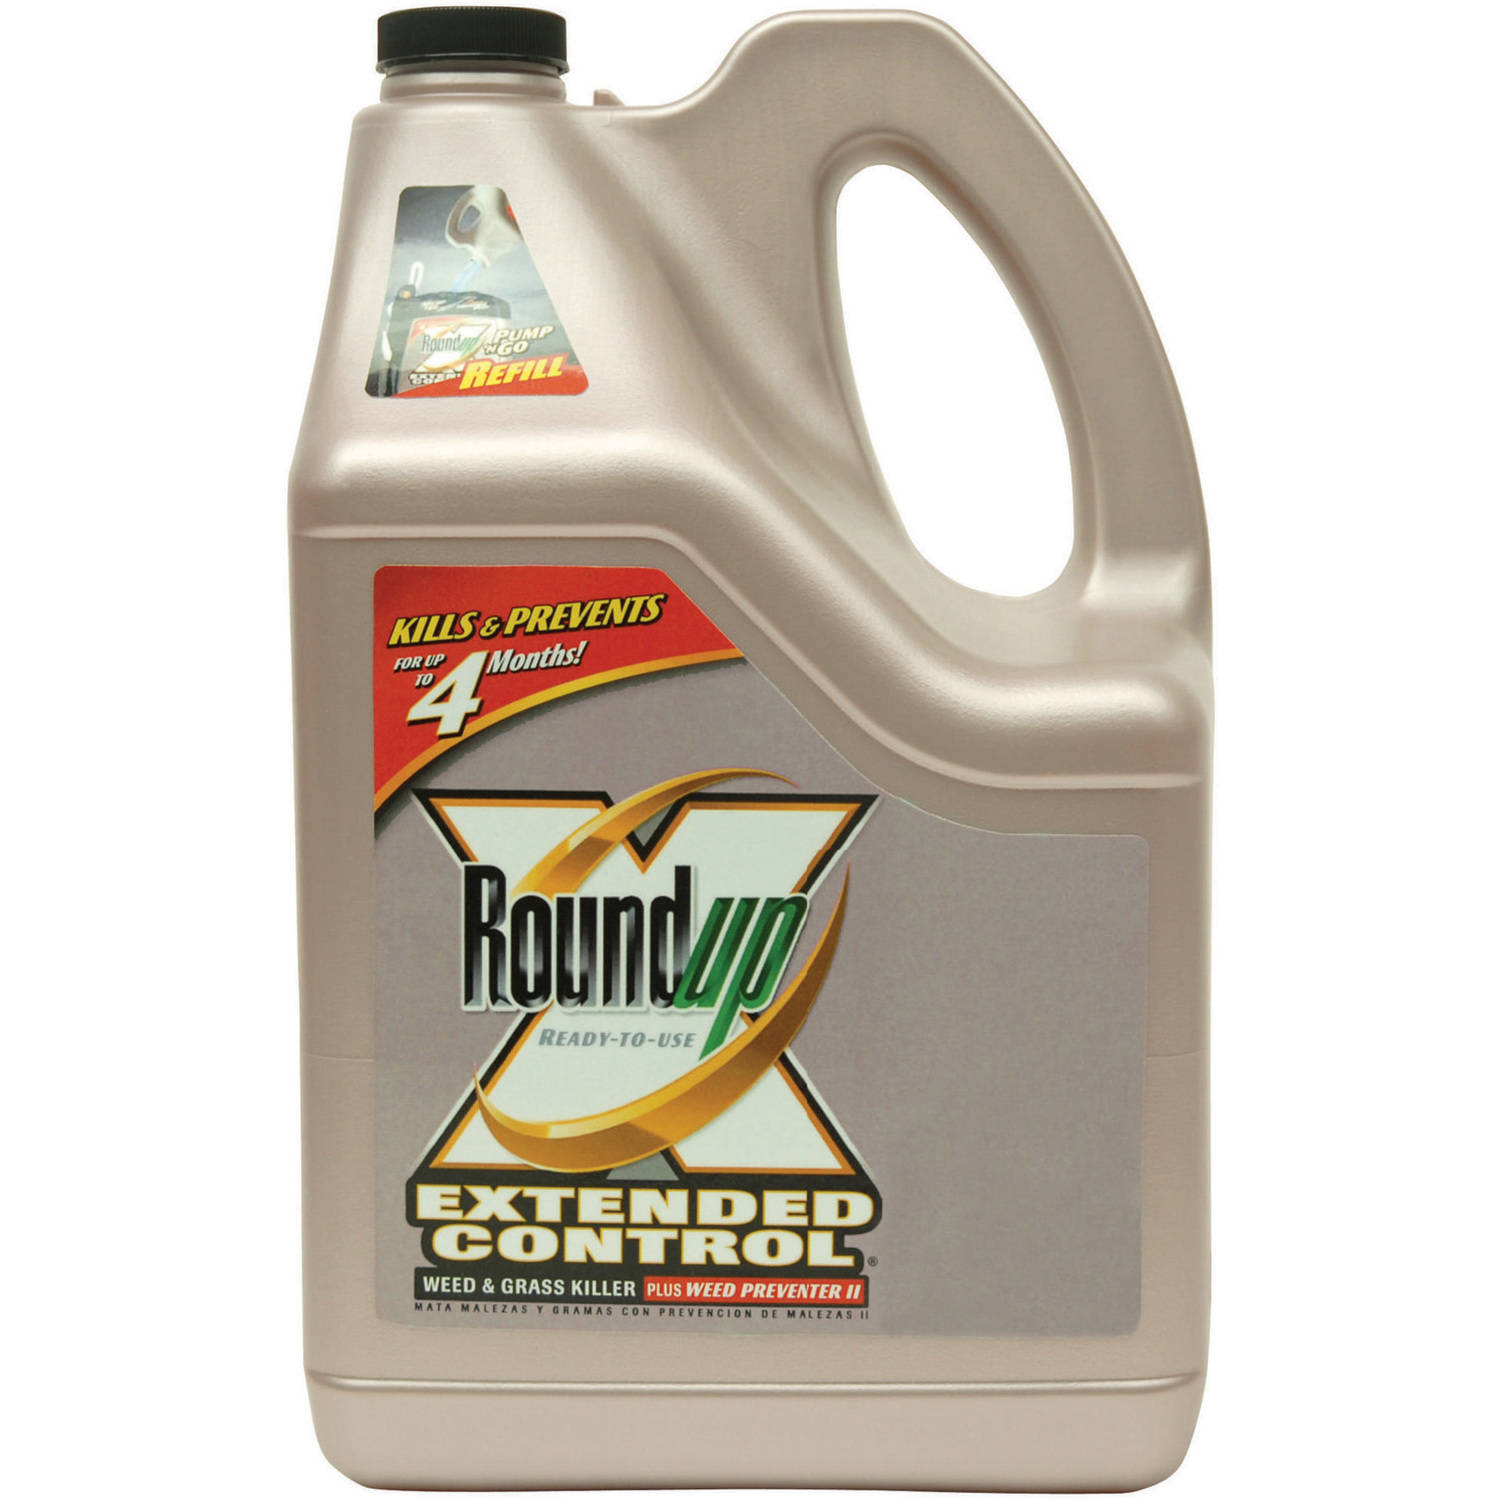 Roundup Ready-To-Use Extended Control Weed & Grass Killer Plus Weed Preventer, II Refill 1.25 gal